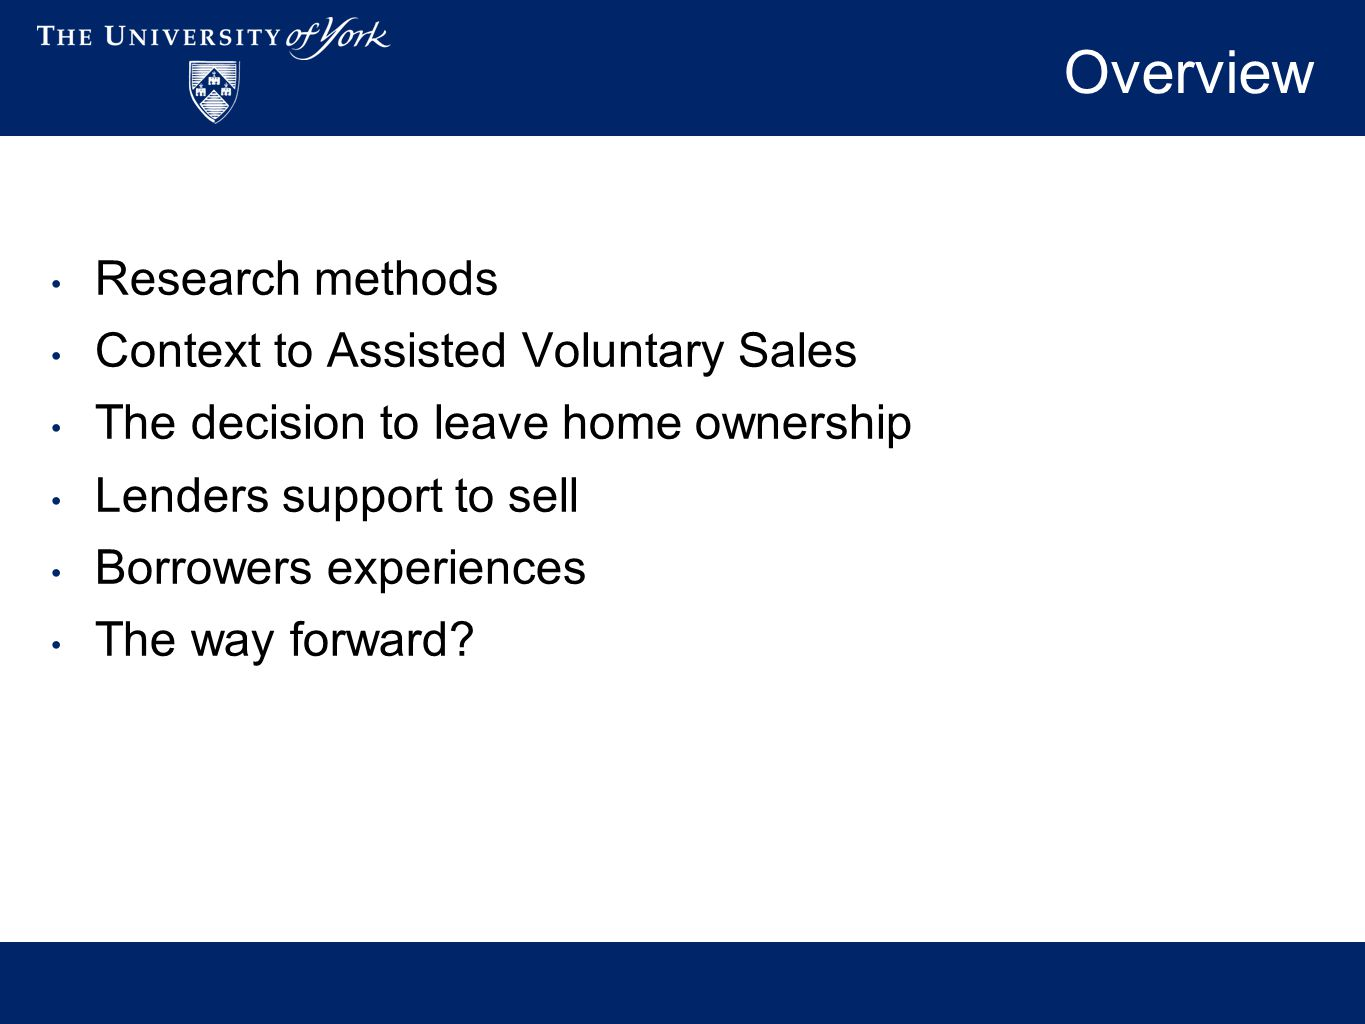 Overview Research methods Context to Assisted Voluntary Sales The decision to leave home ownership Lenders support to sell Borrowers experiences The way forward?